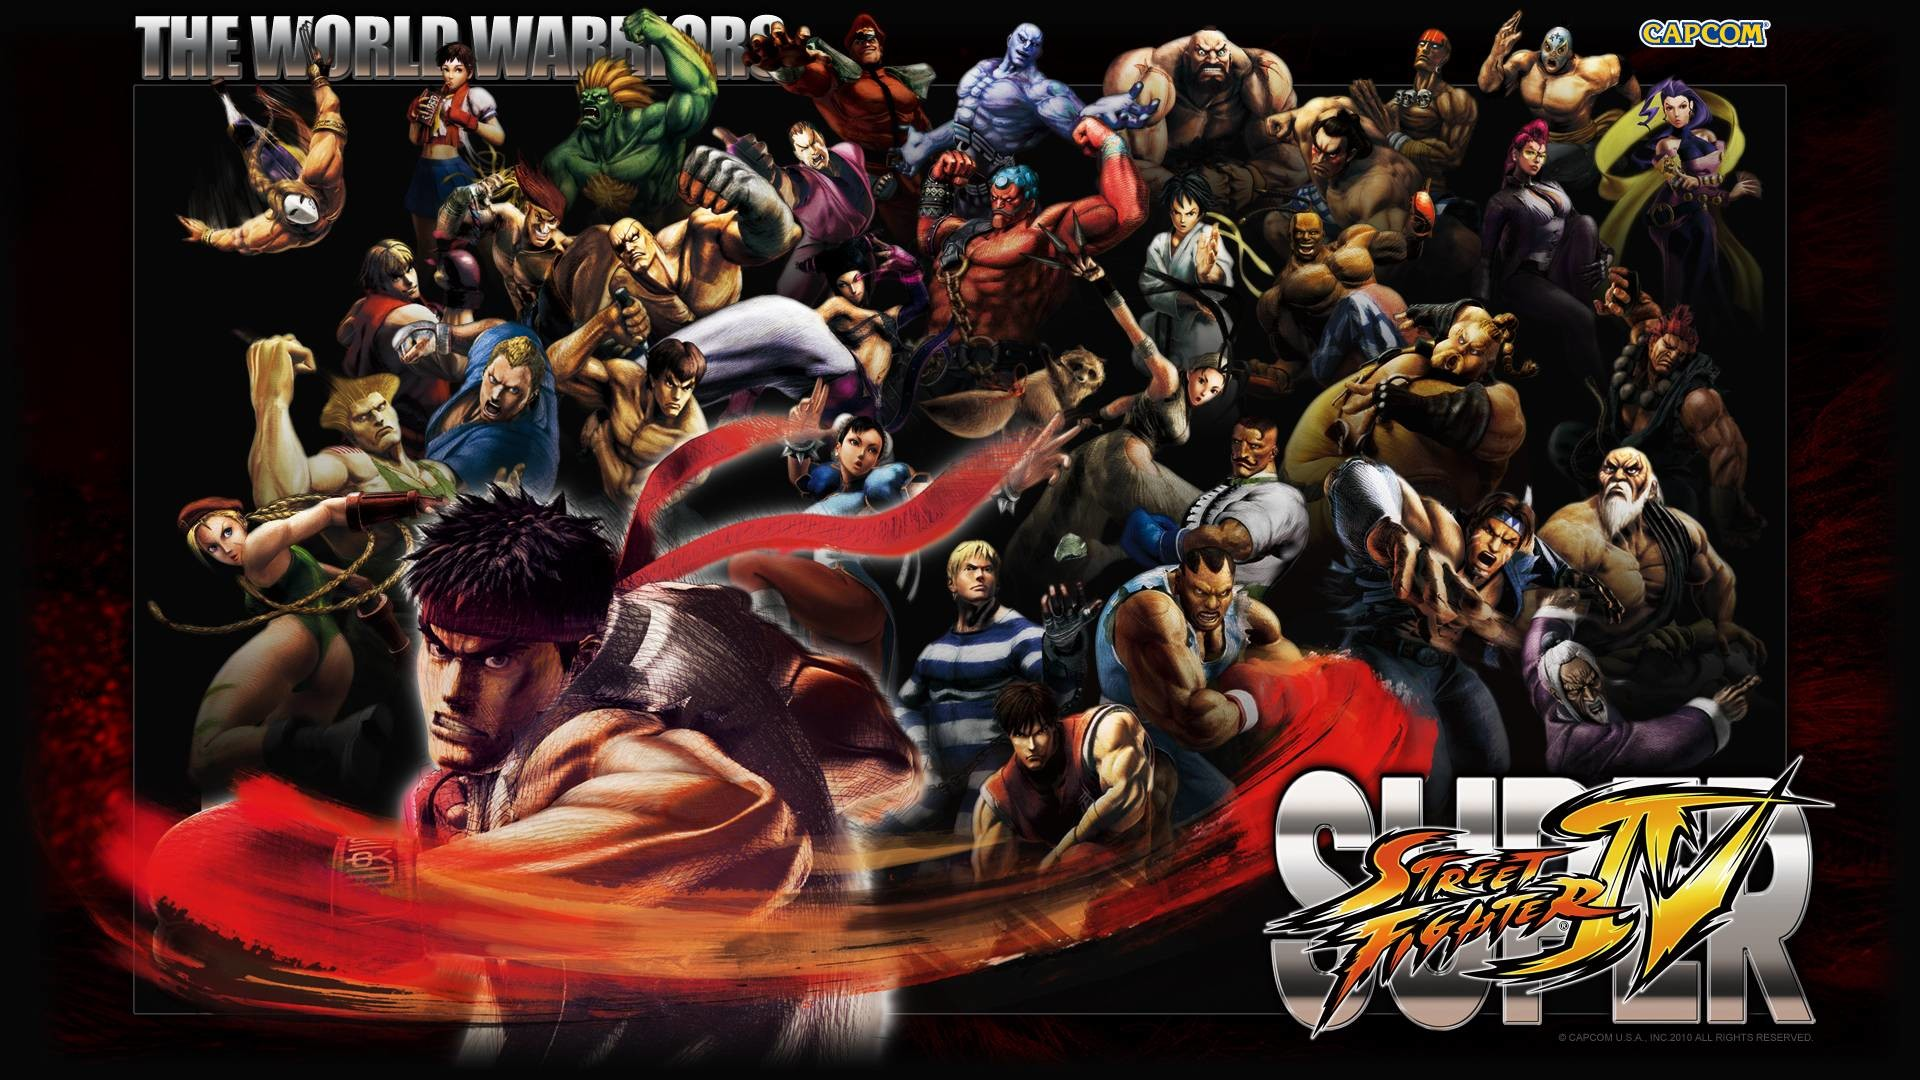 Street Fighter 4 Wallpaper Wallpapertag